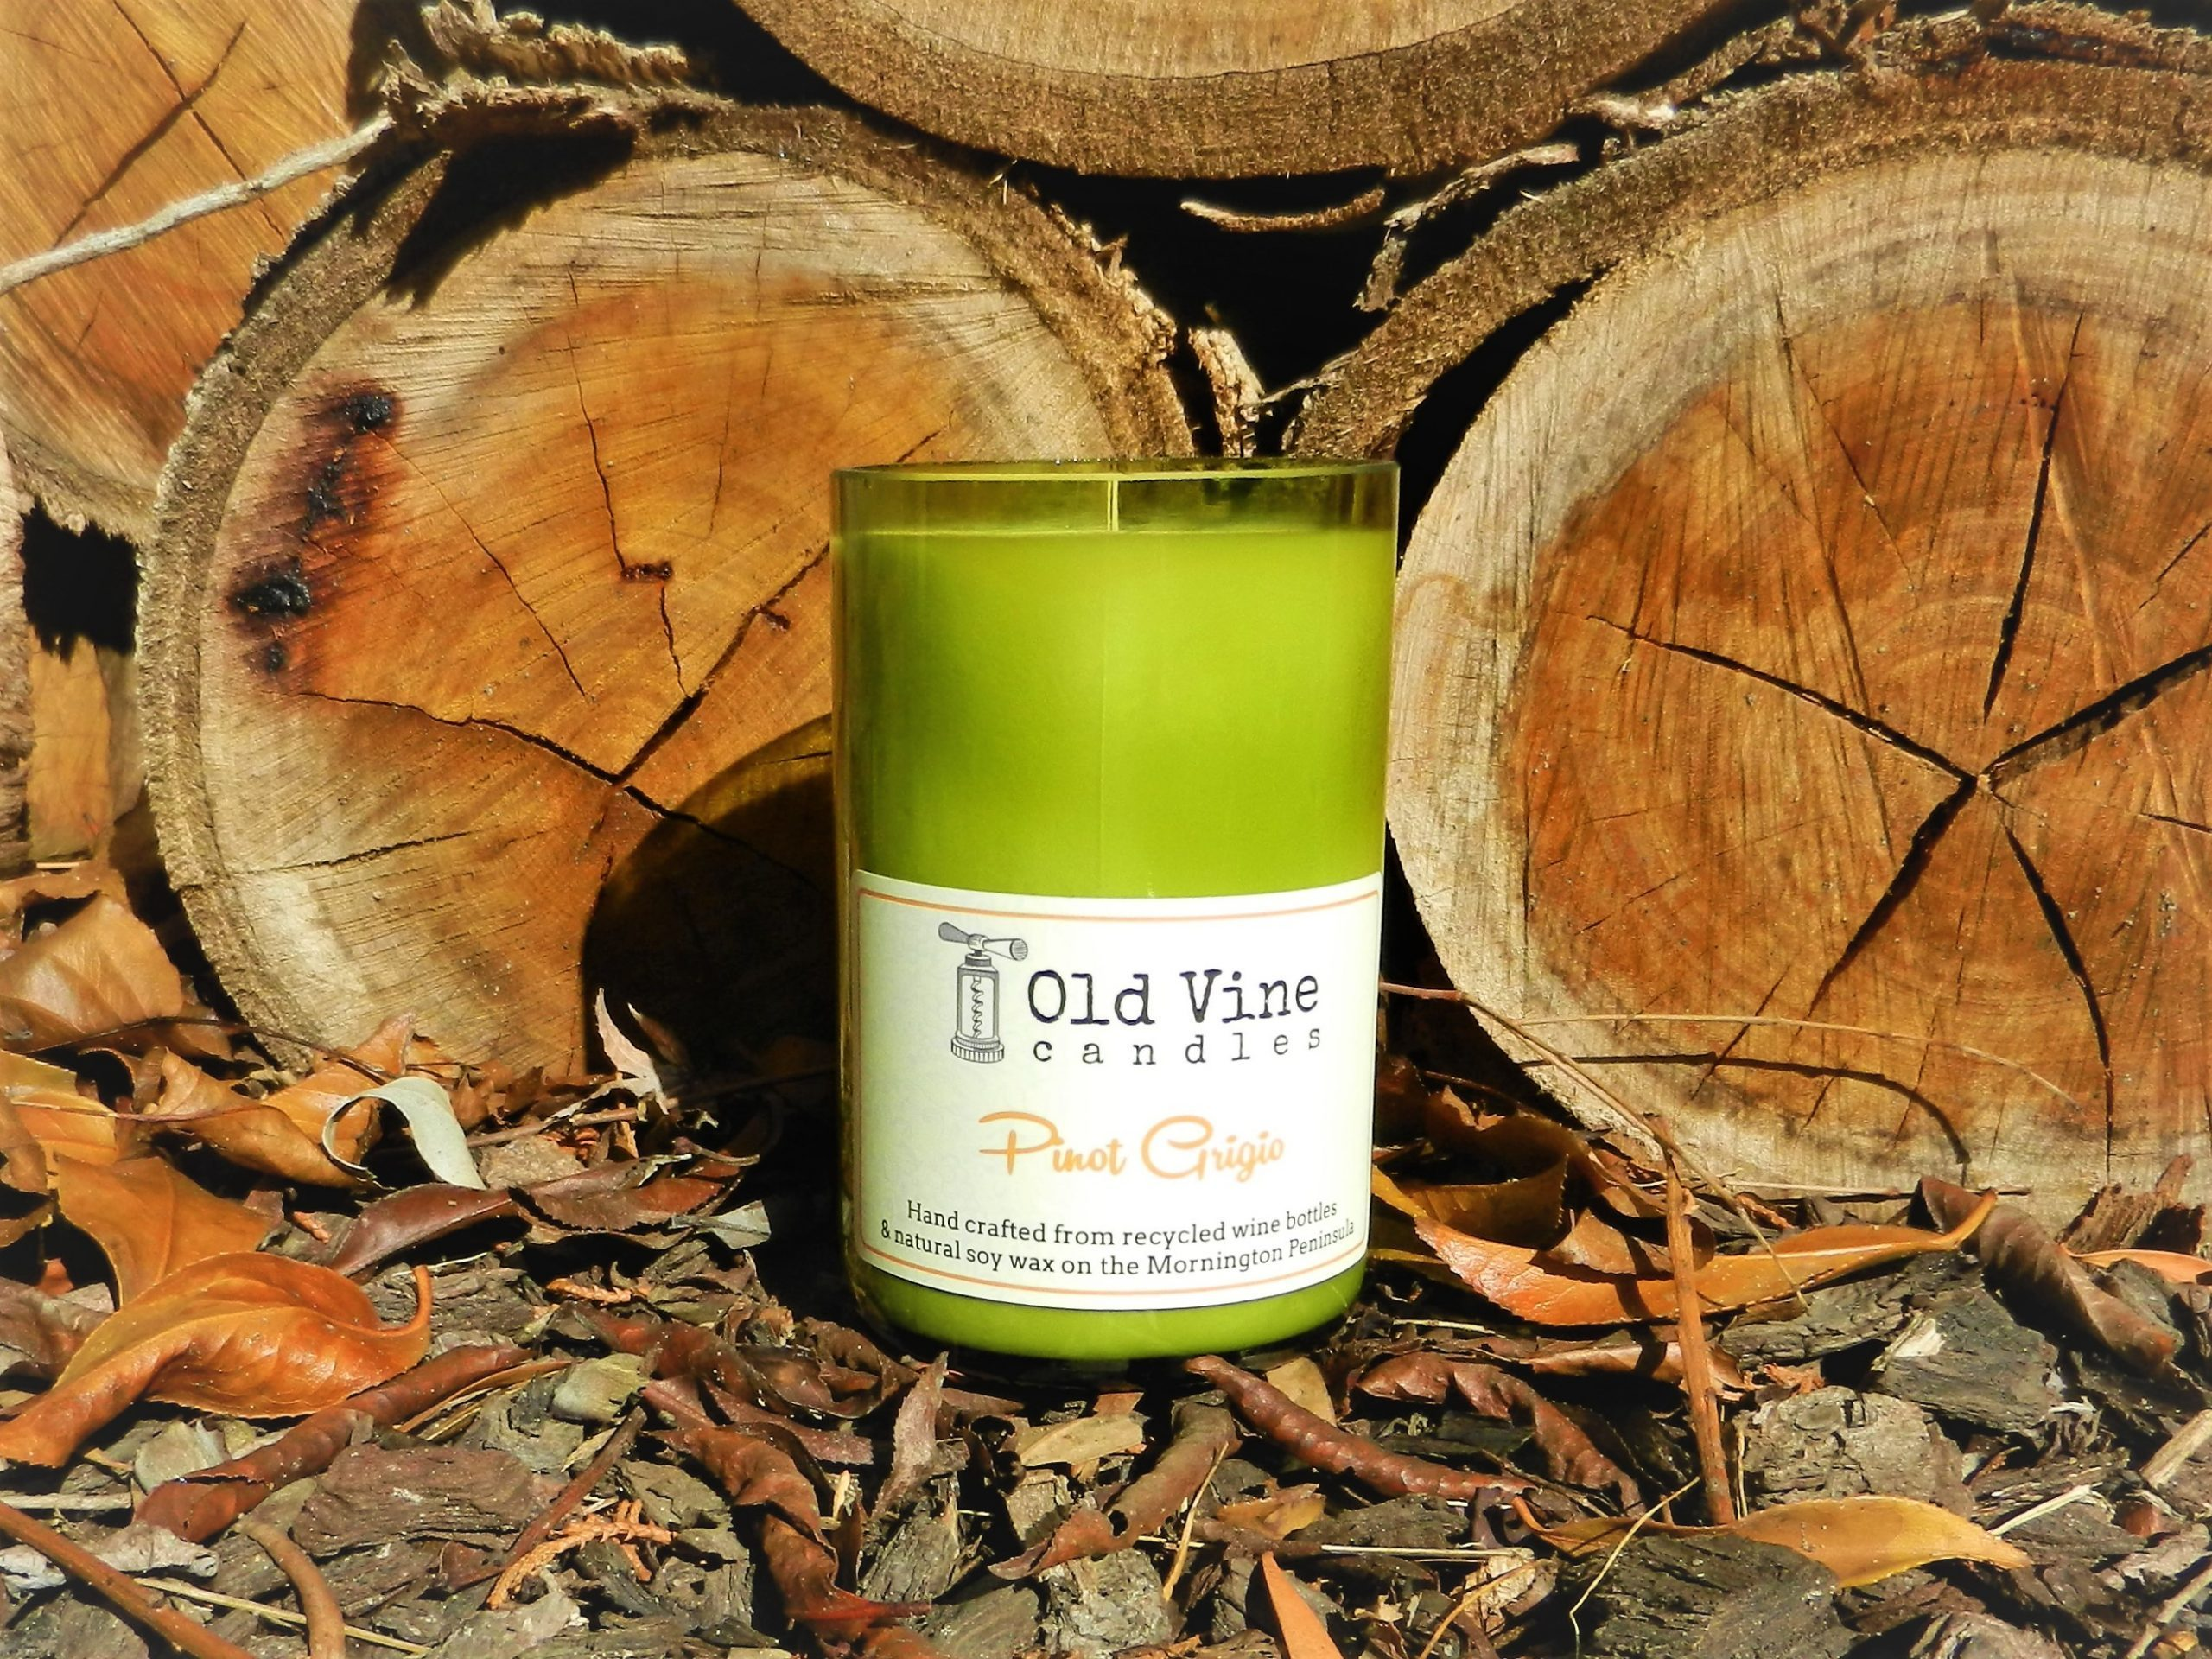 Pinot Grigio Candle By Old Vine Candles -Display